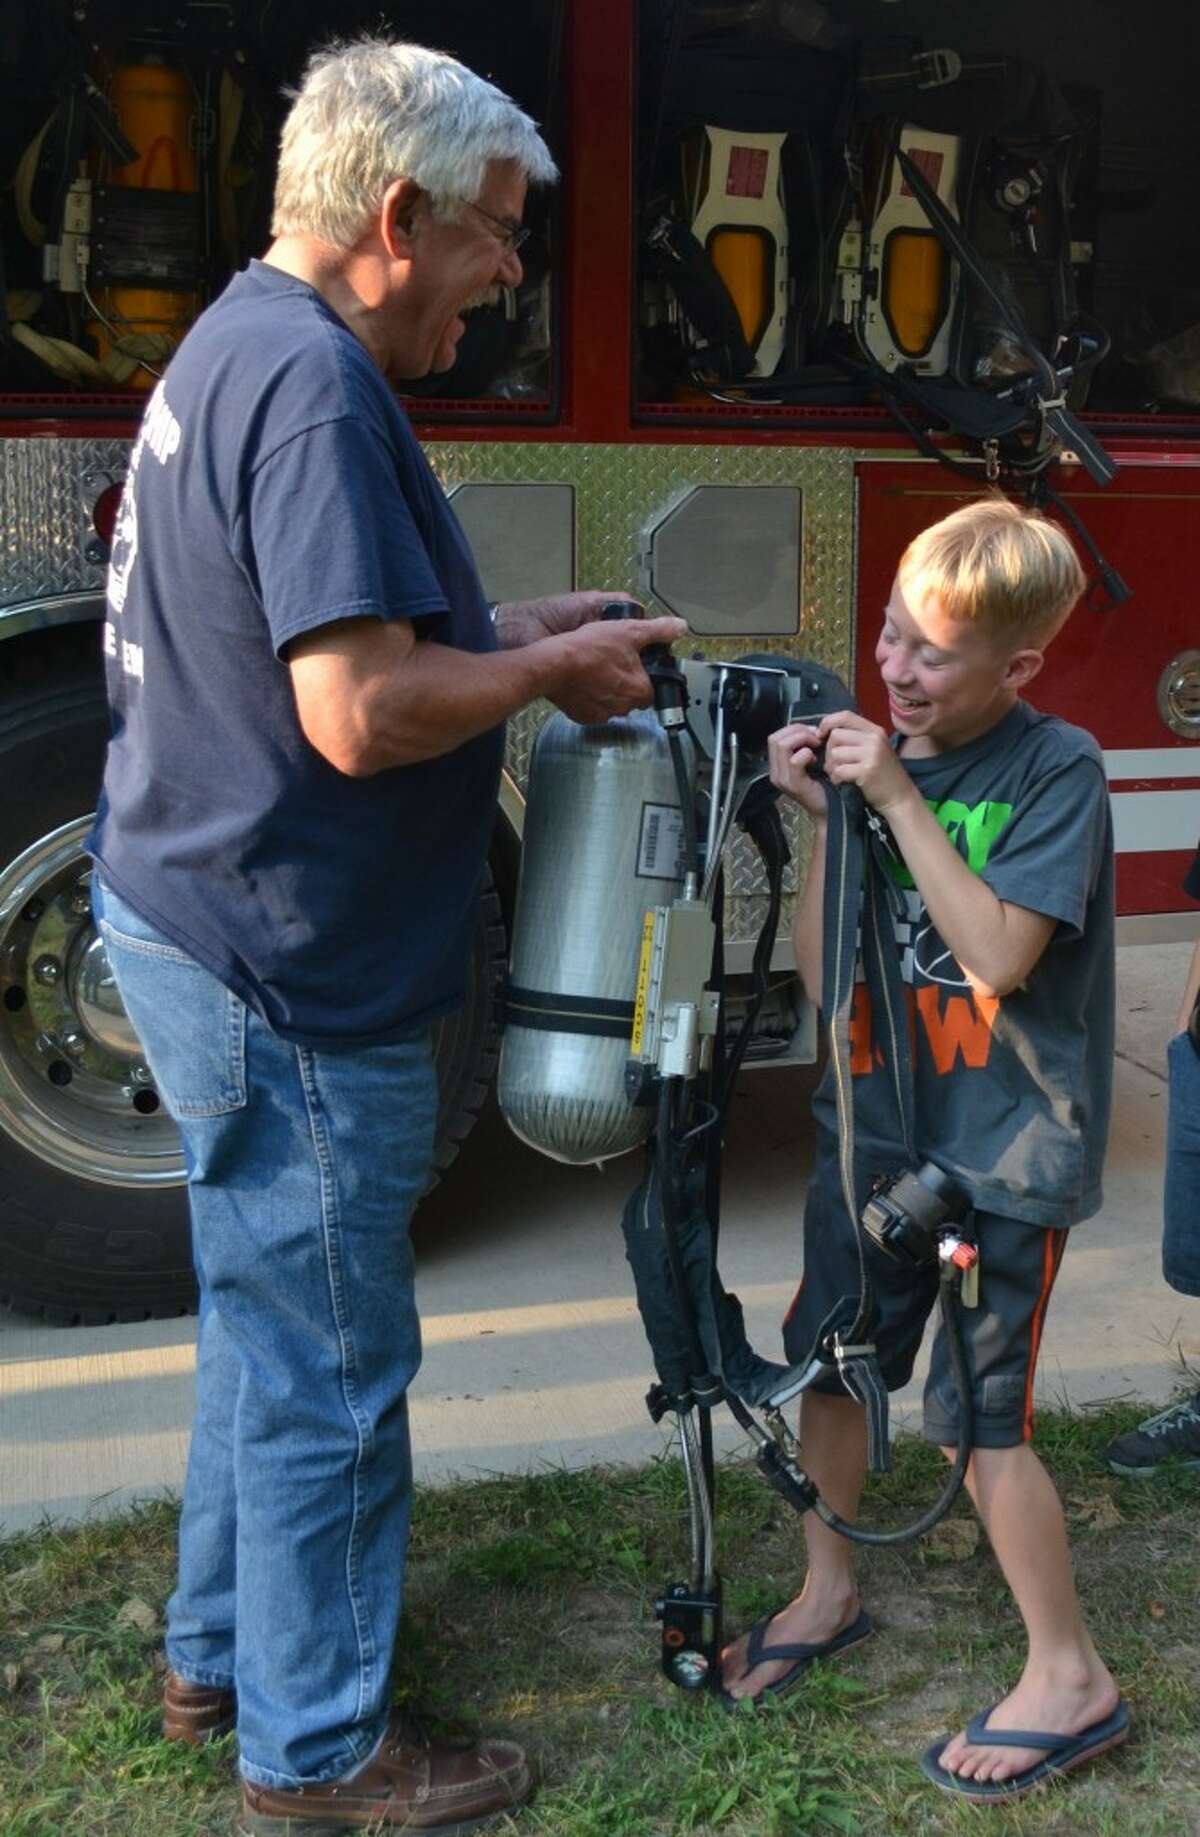 Norman Township Fire Chief John Gramza (LEFT) laughs as Tyler Duncan (RIGHT) attempts to lift a compressed air canister, a part of a firefighter's equipment that weighs between 25 and 50 pounds. (Meg LeDuc/News Advocate)